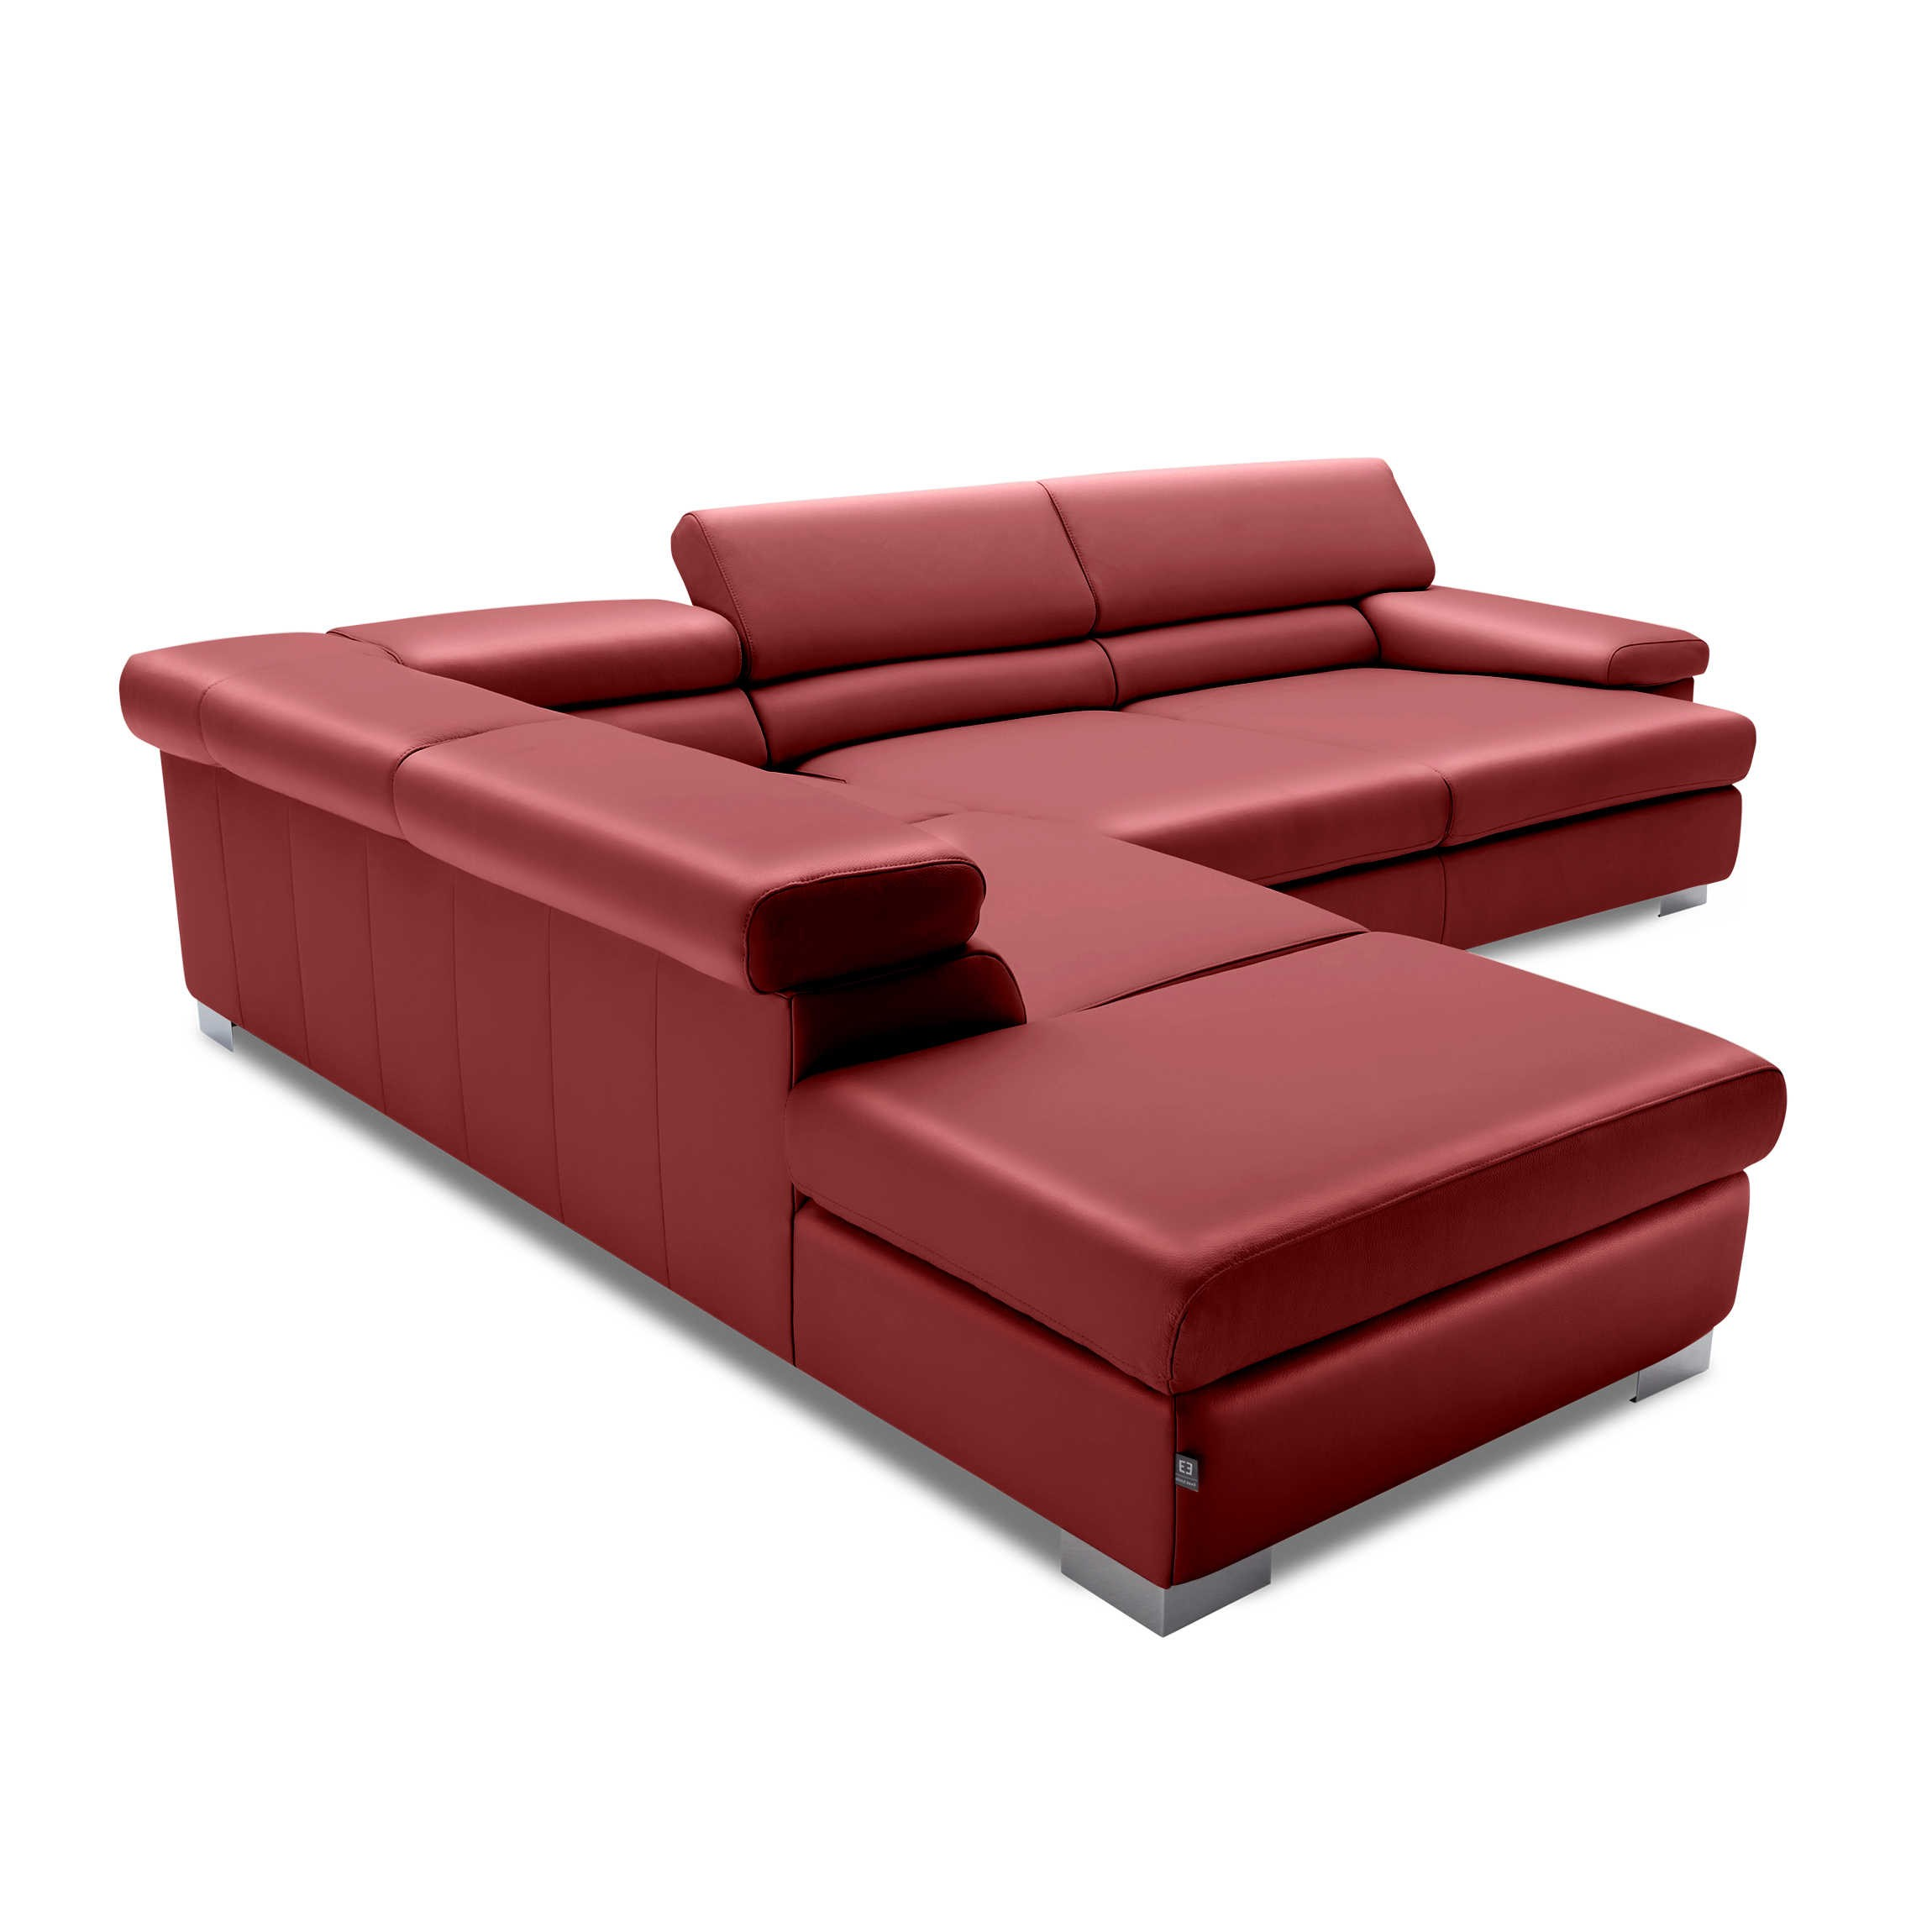 ewald schillig brand ecksofa courage rot leder l online kaufen bei woonio. Black Bedroom Furniture Sets. Home Design Ideas